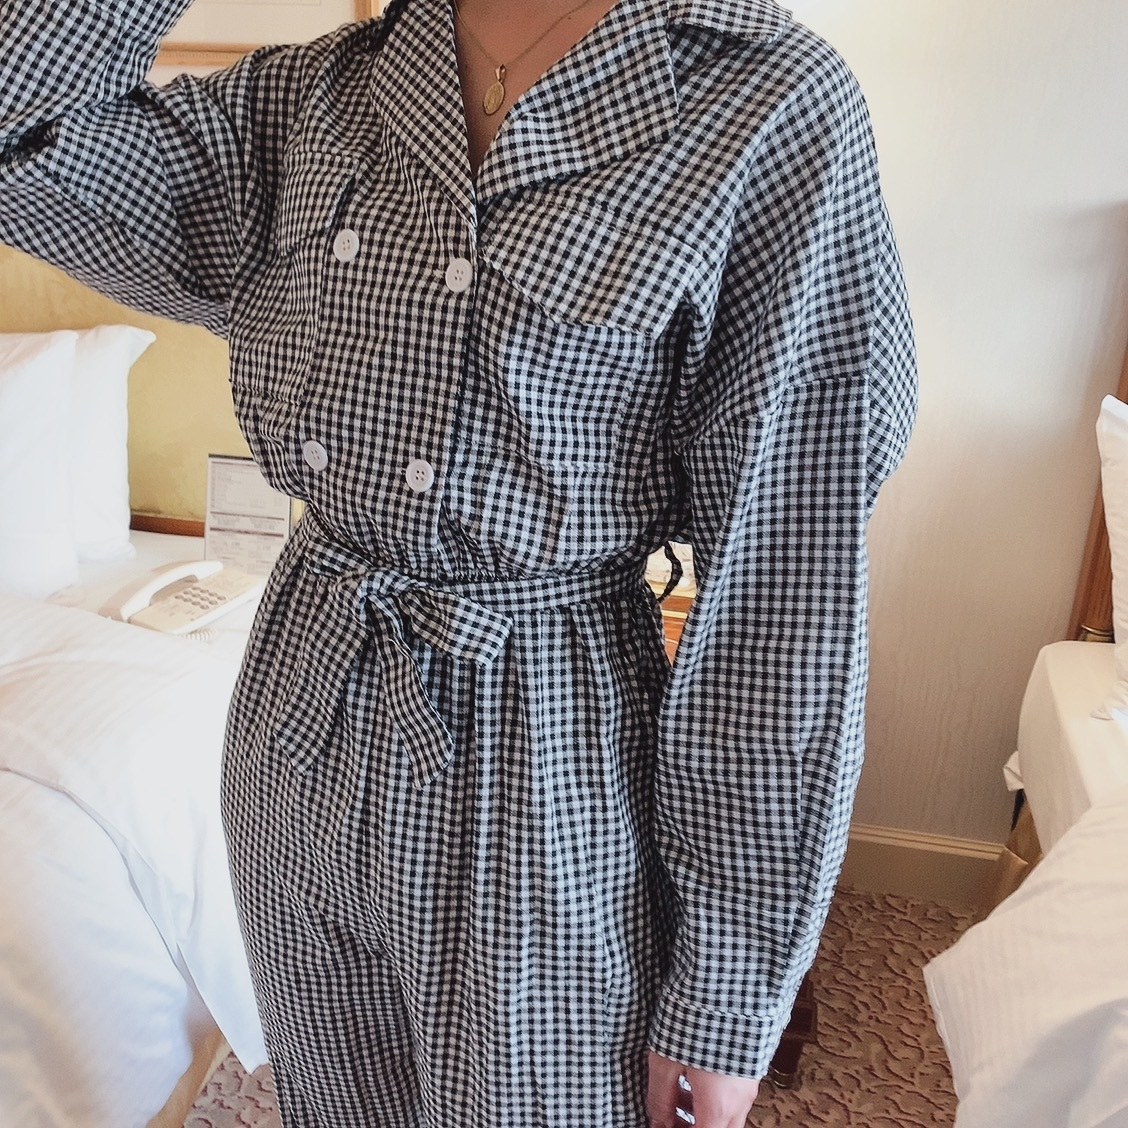 gingham check rompers